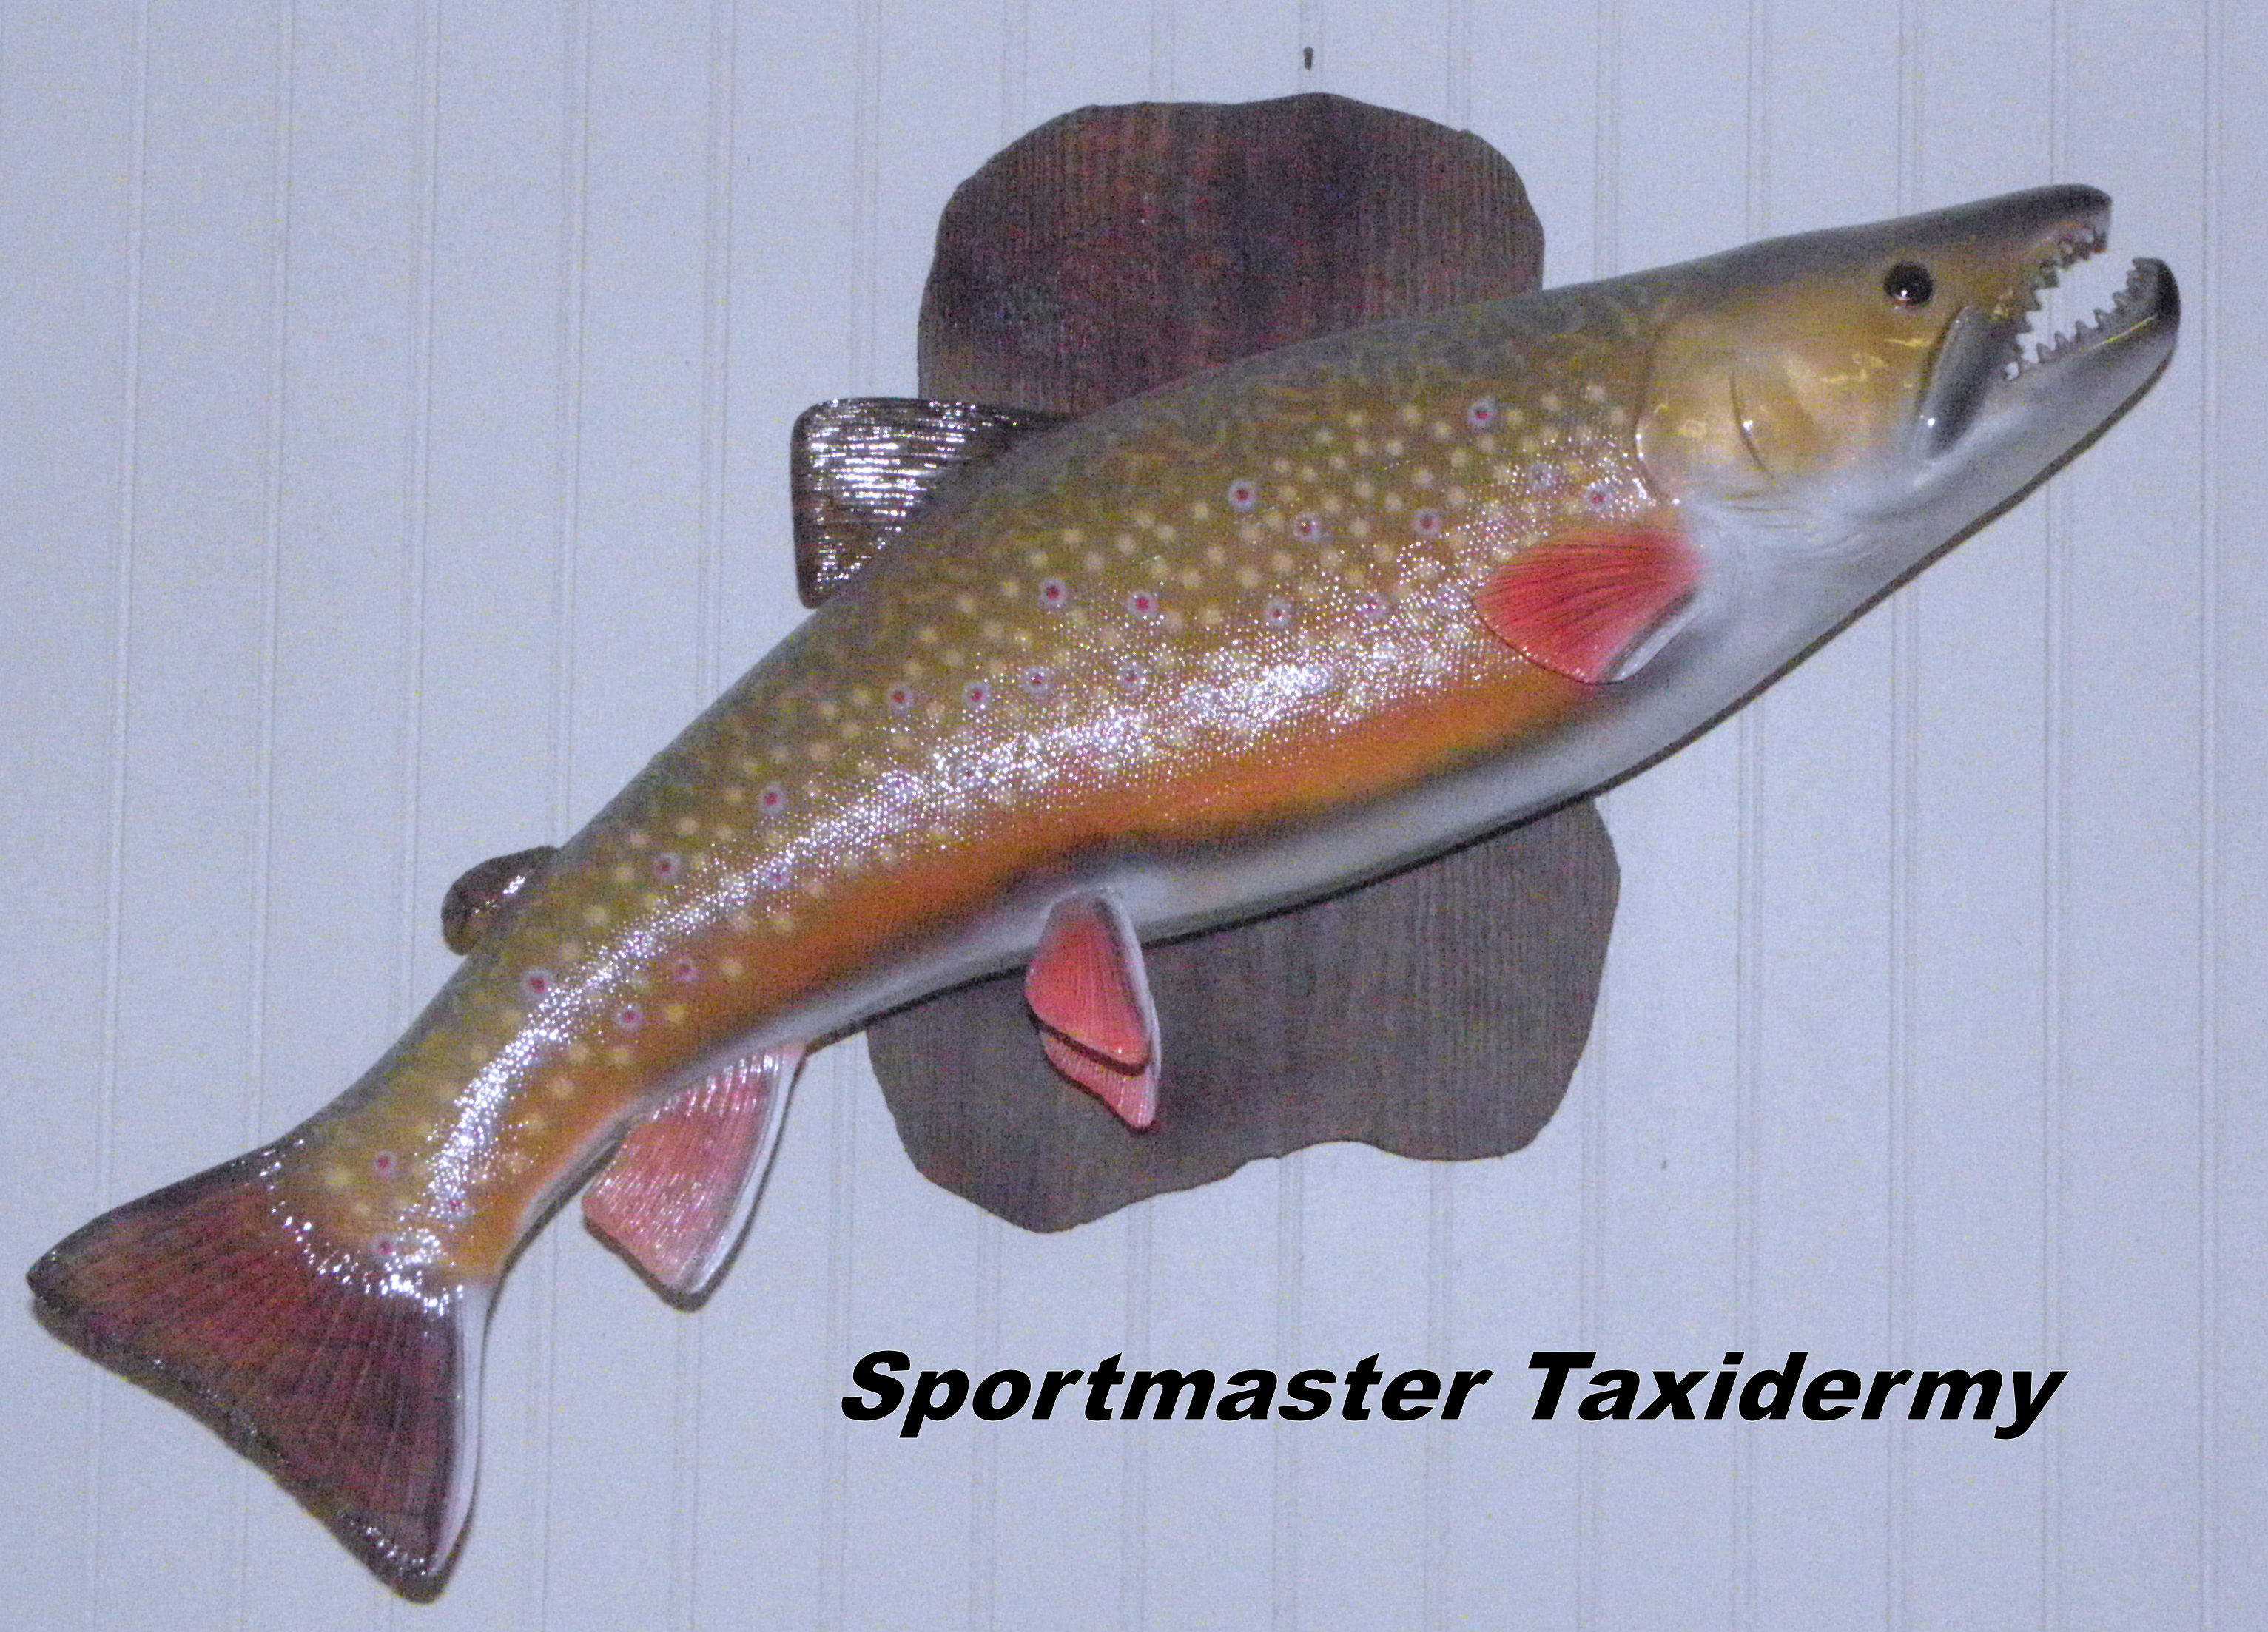 Trout stripe smallmouth largemouth bass fish taxidermy for How to taxidermy a fish